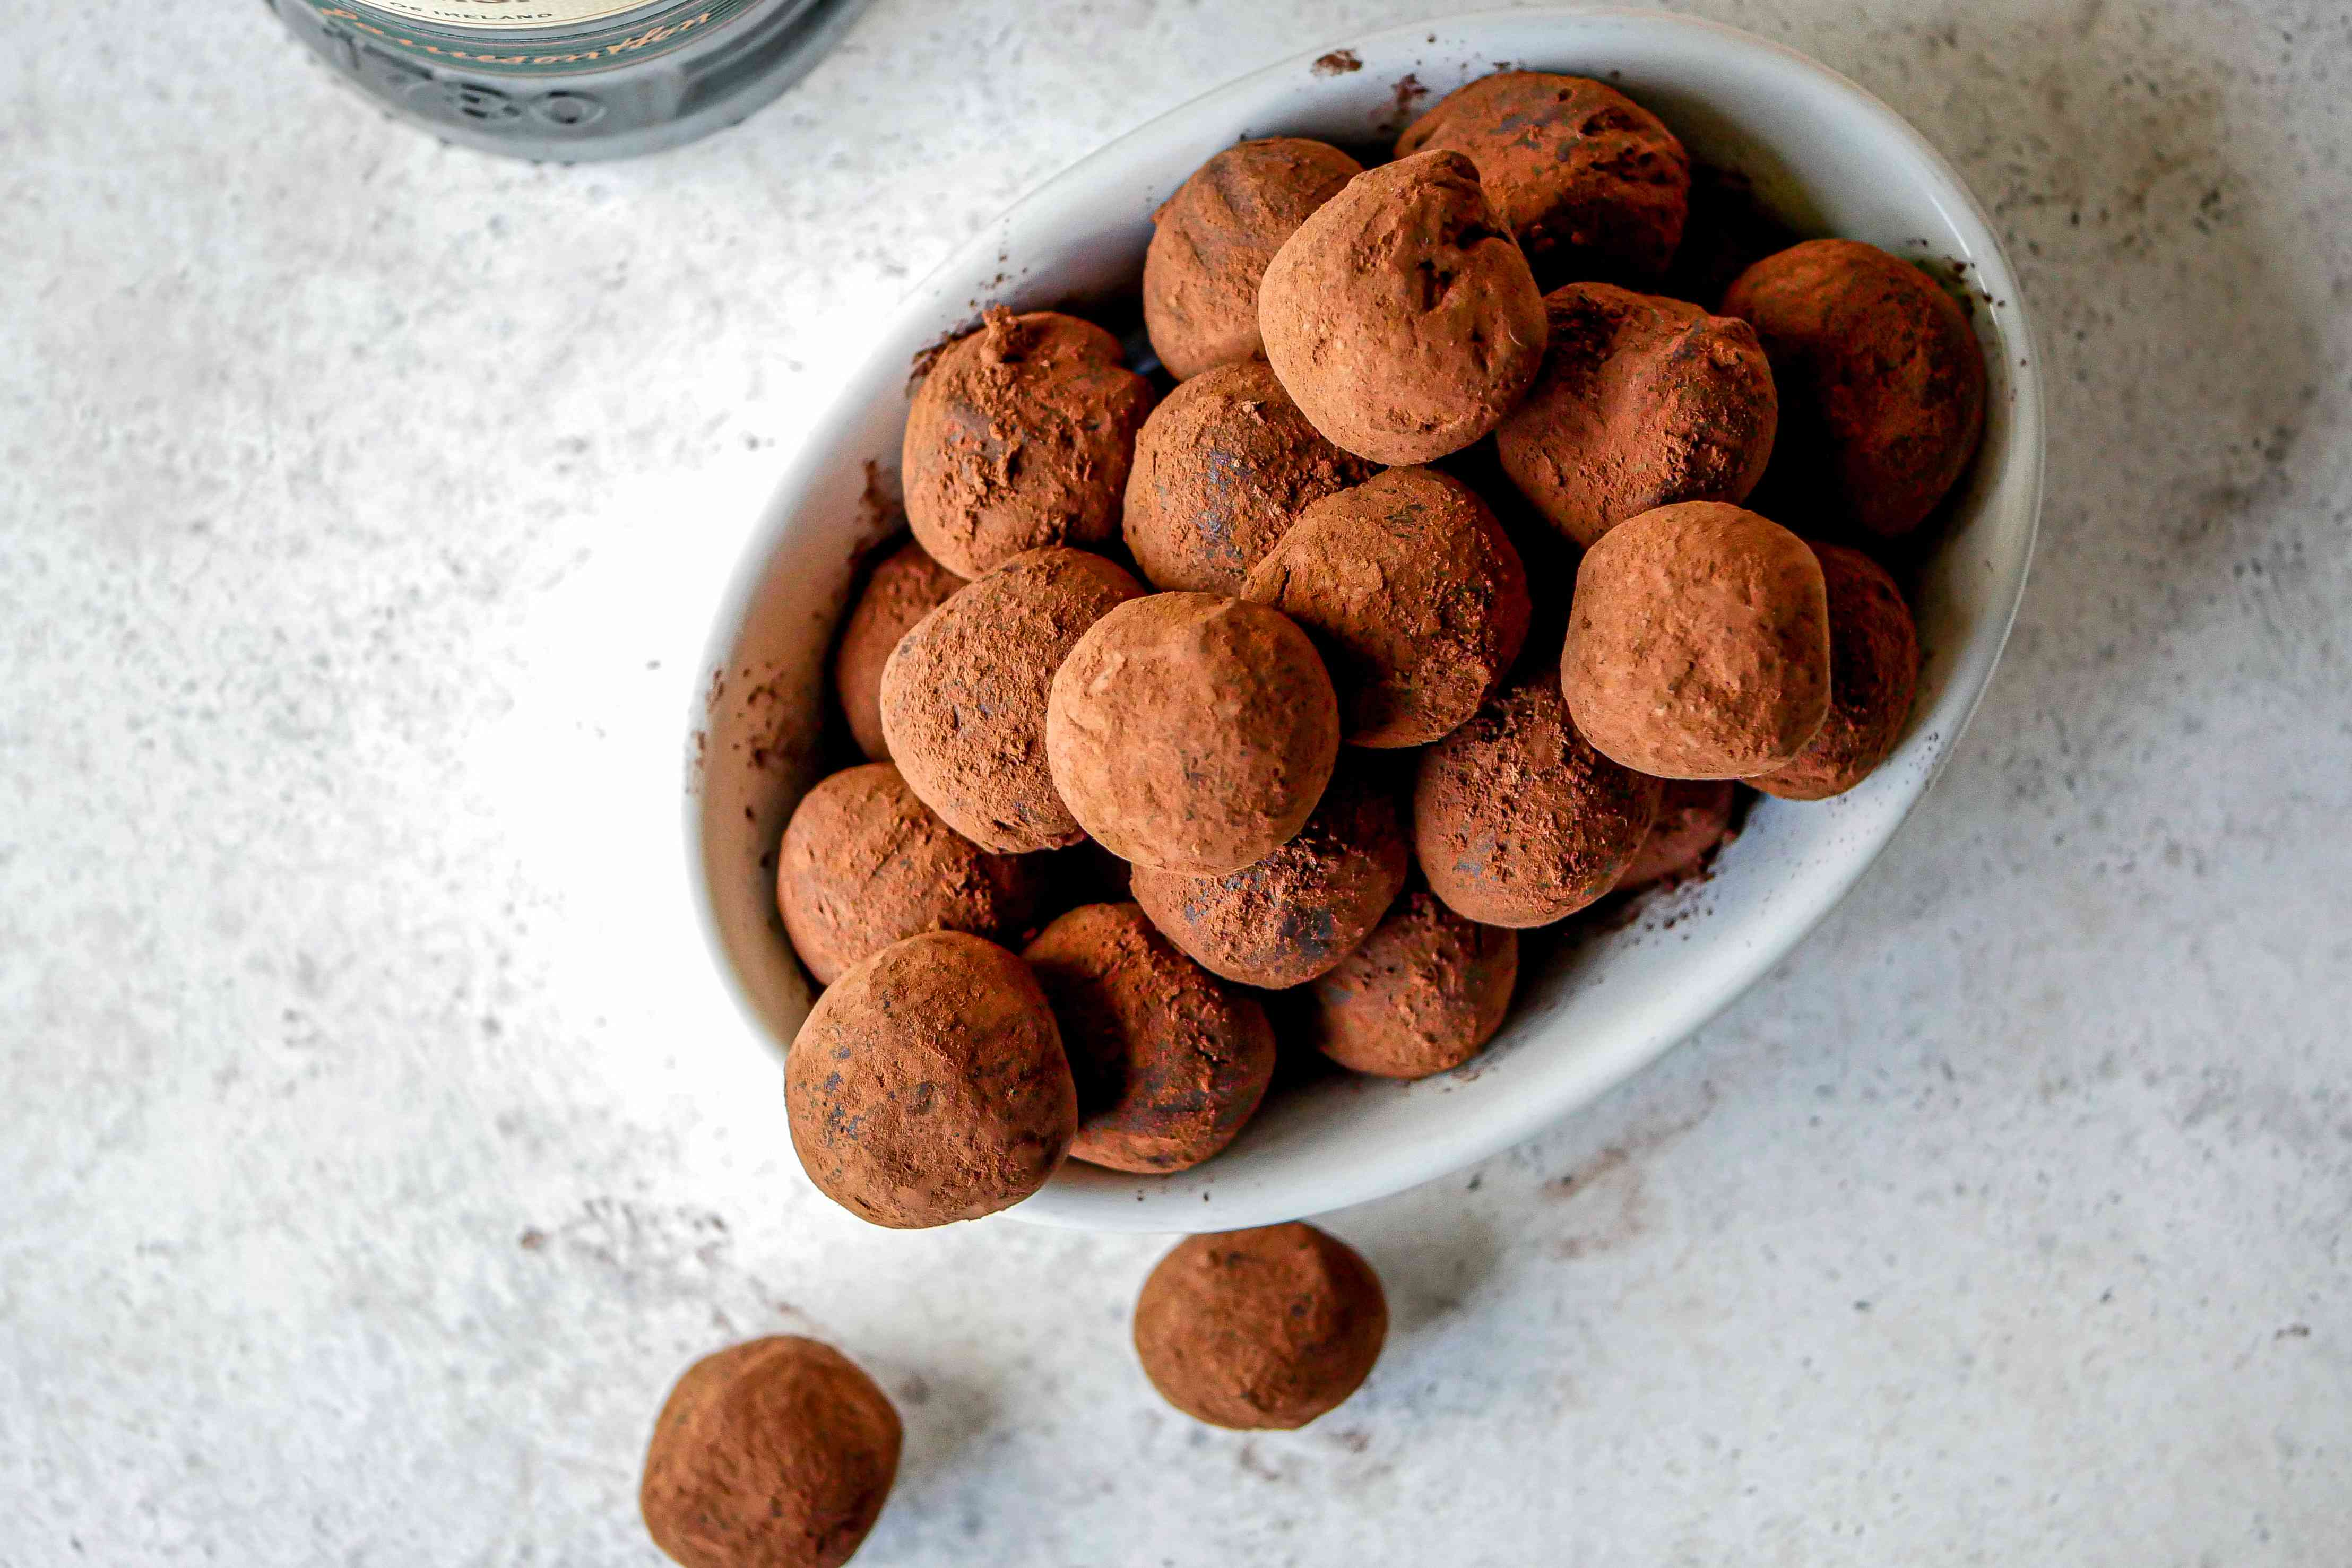 Whiskey Chocolate Truffles rolled in cocoa.